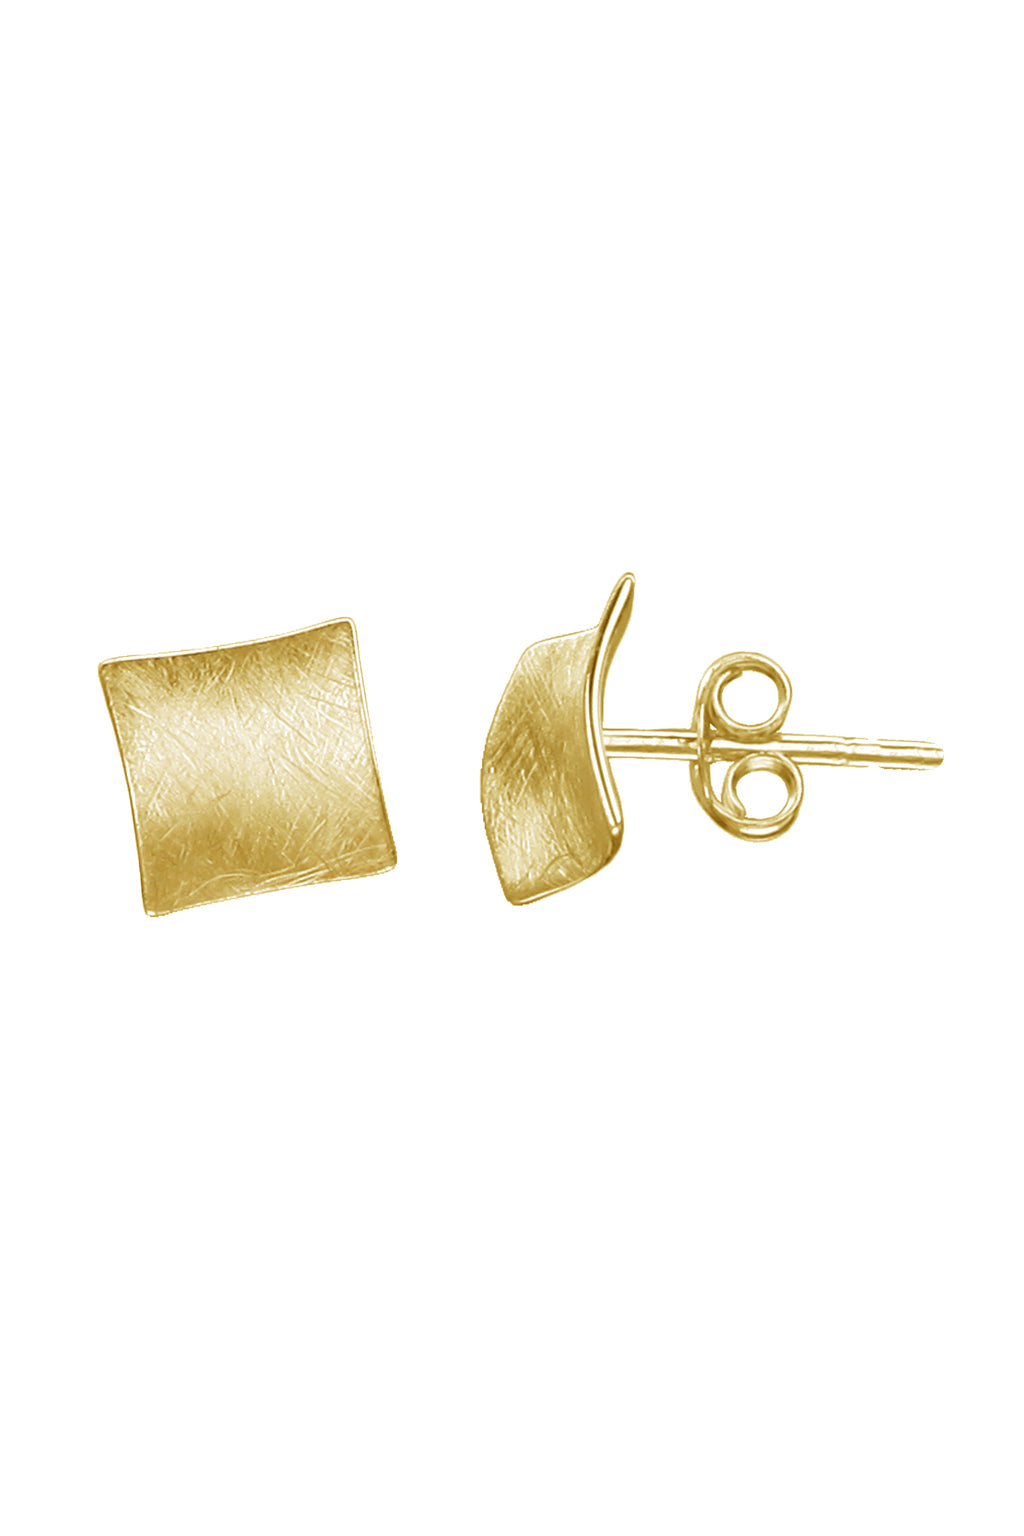 Gold Concave Square Stud Earring